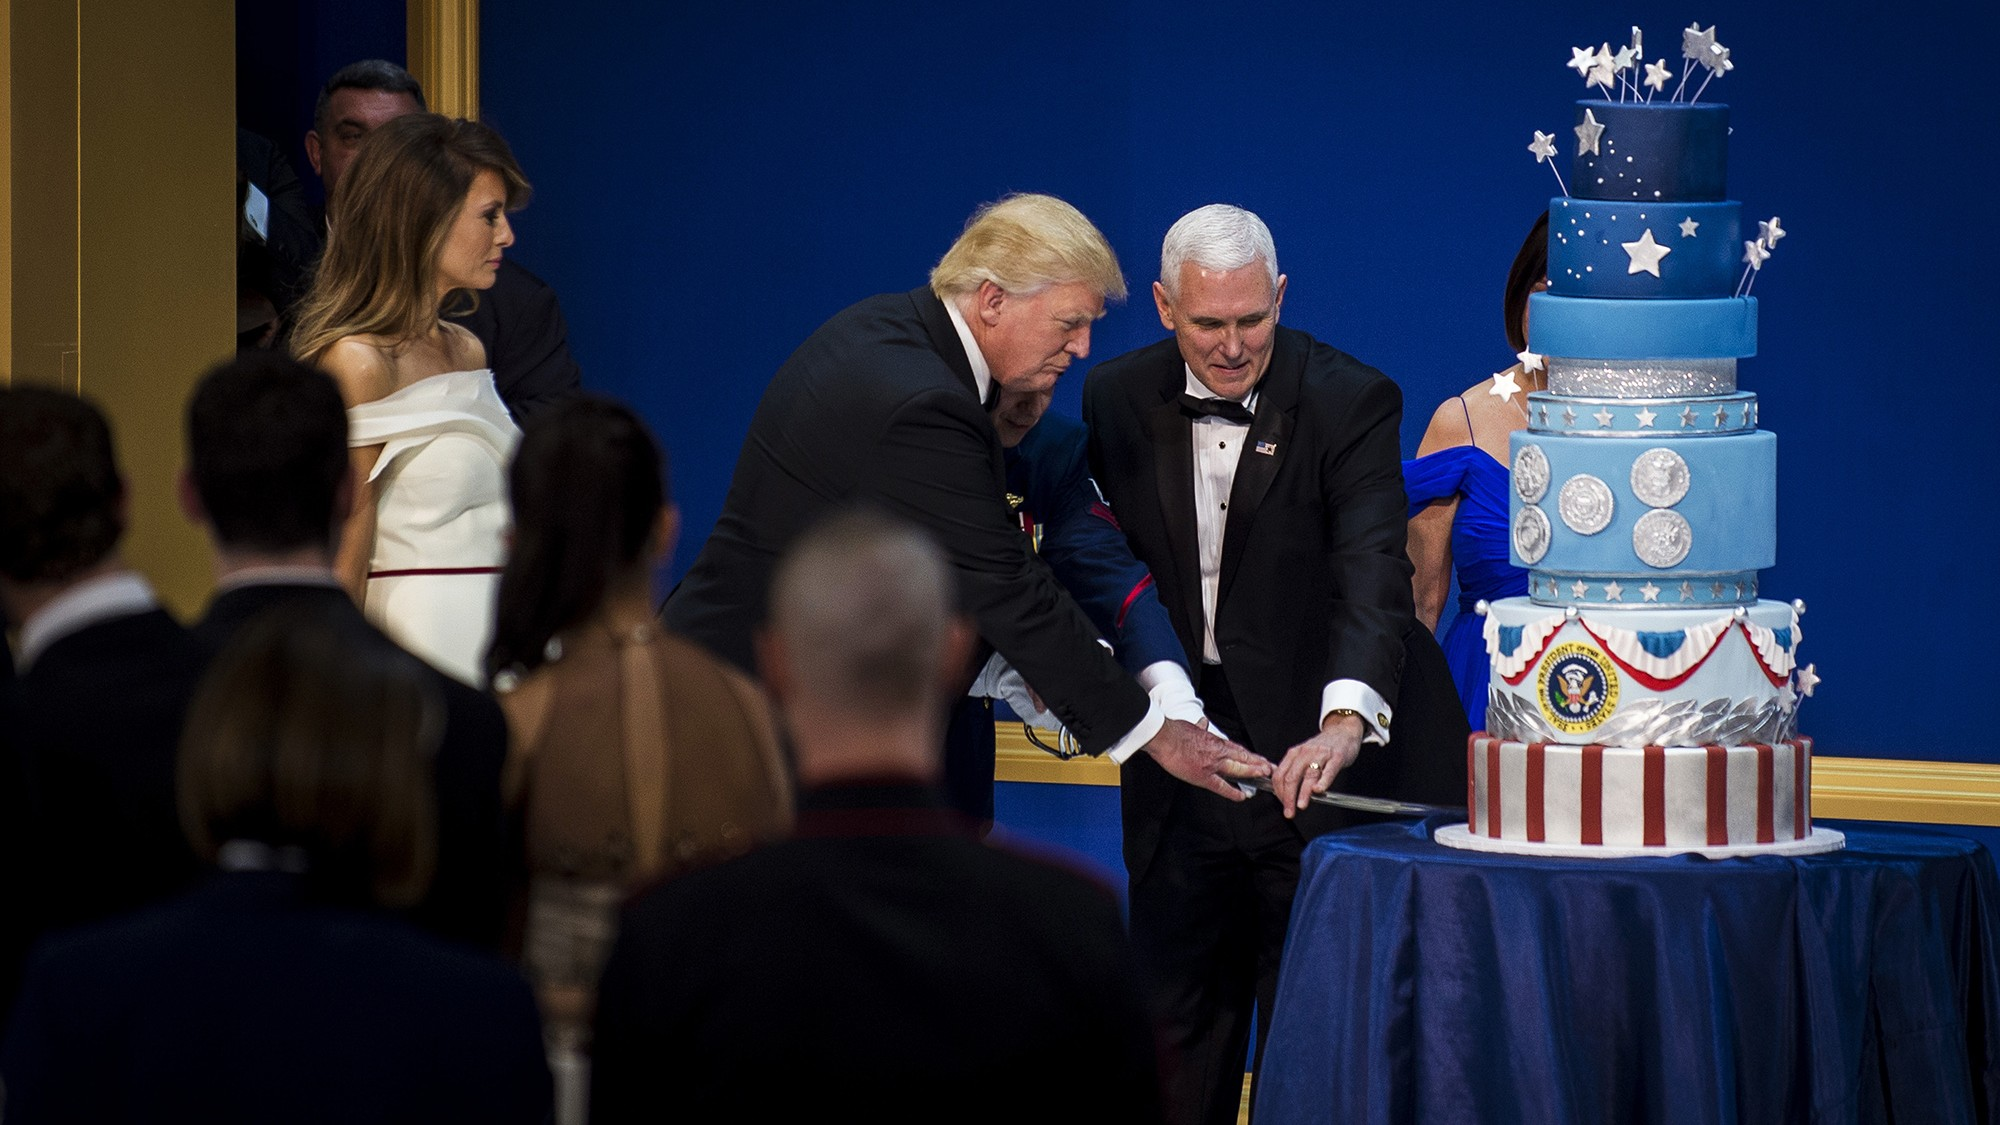 The Bakers of Trump's Inauguration Cake Will Donate Profits